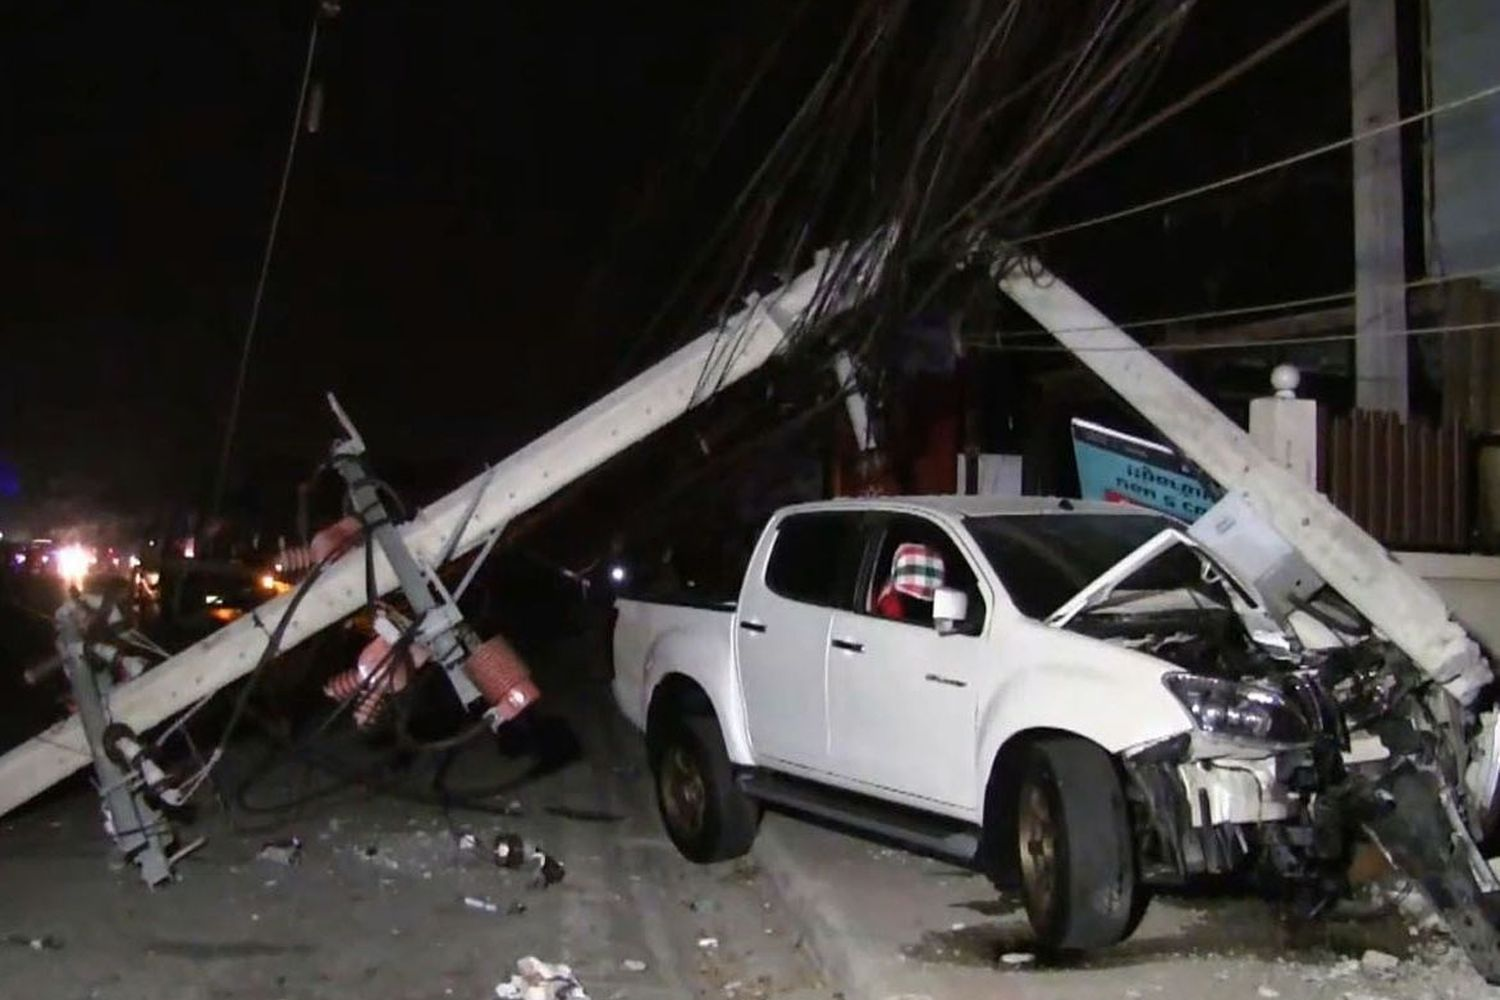 A pickup truck crashes into a power pole, bringing down four others, in Bang Sao Thong, district, Samut Prakan province, on Saturday night. (Photos supplied by Sutthiwit Chayutworakan)